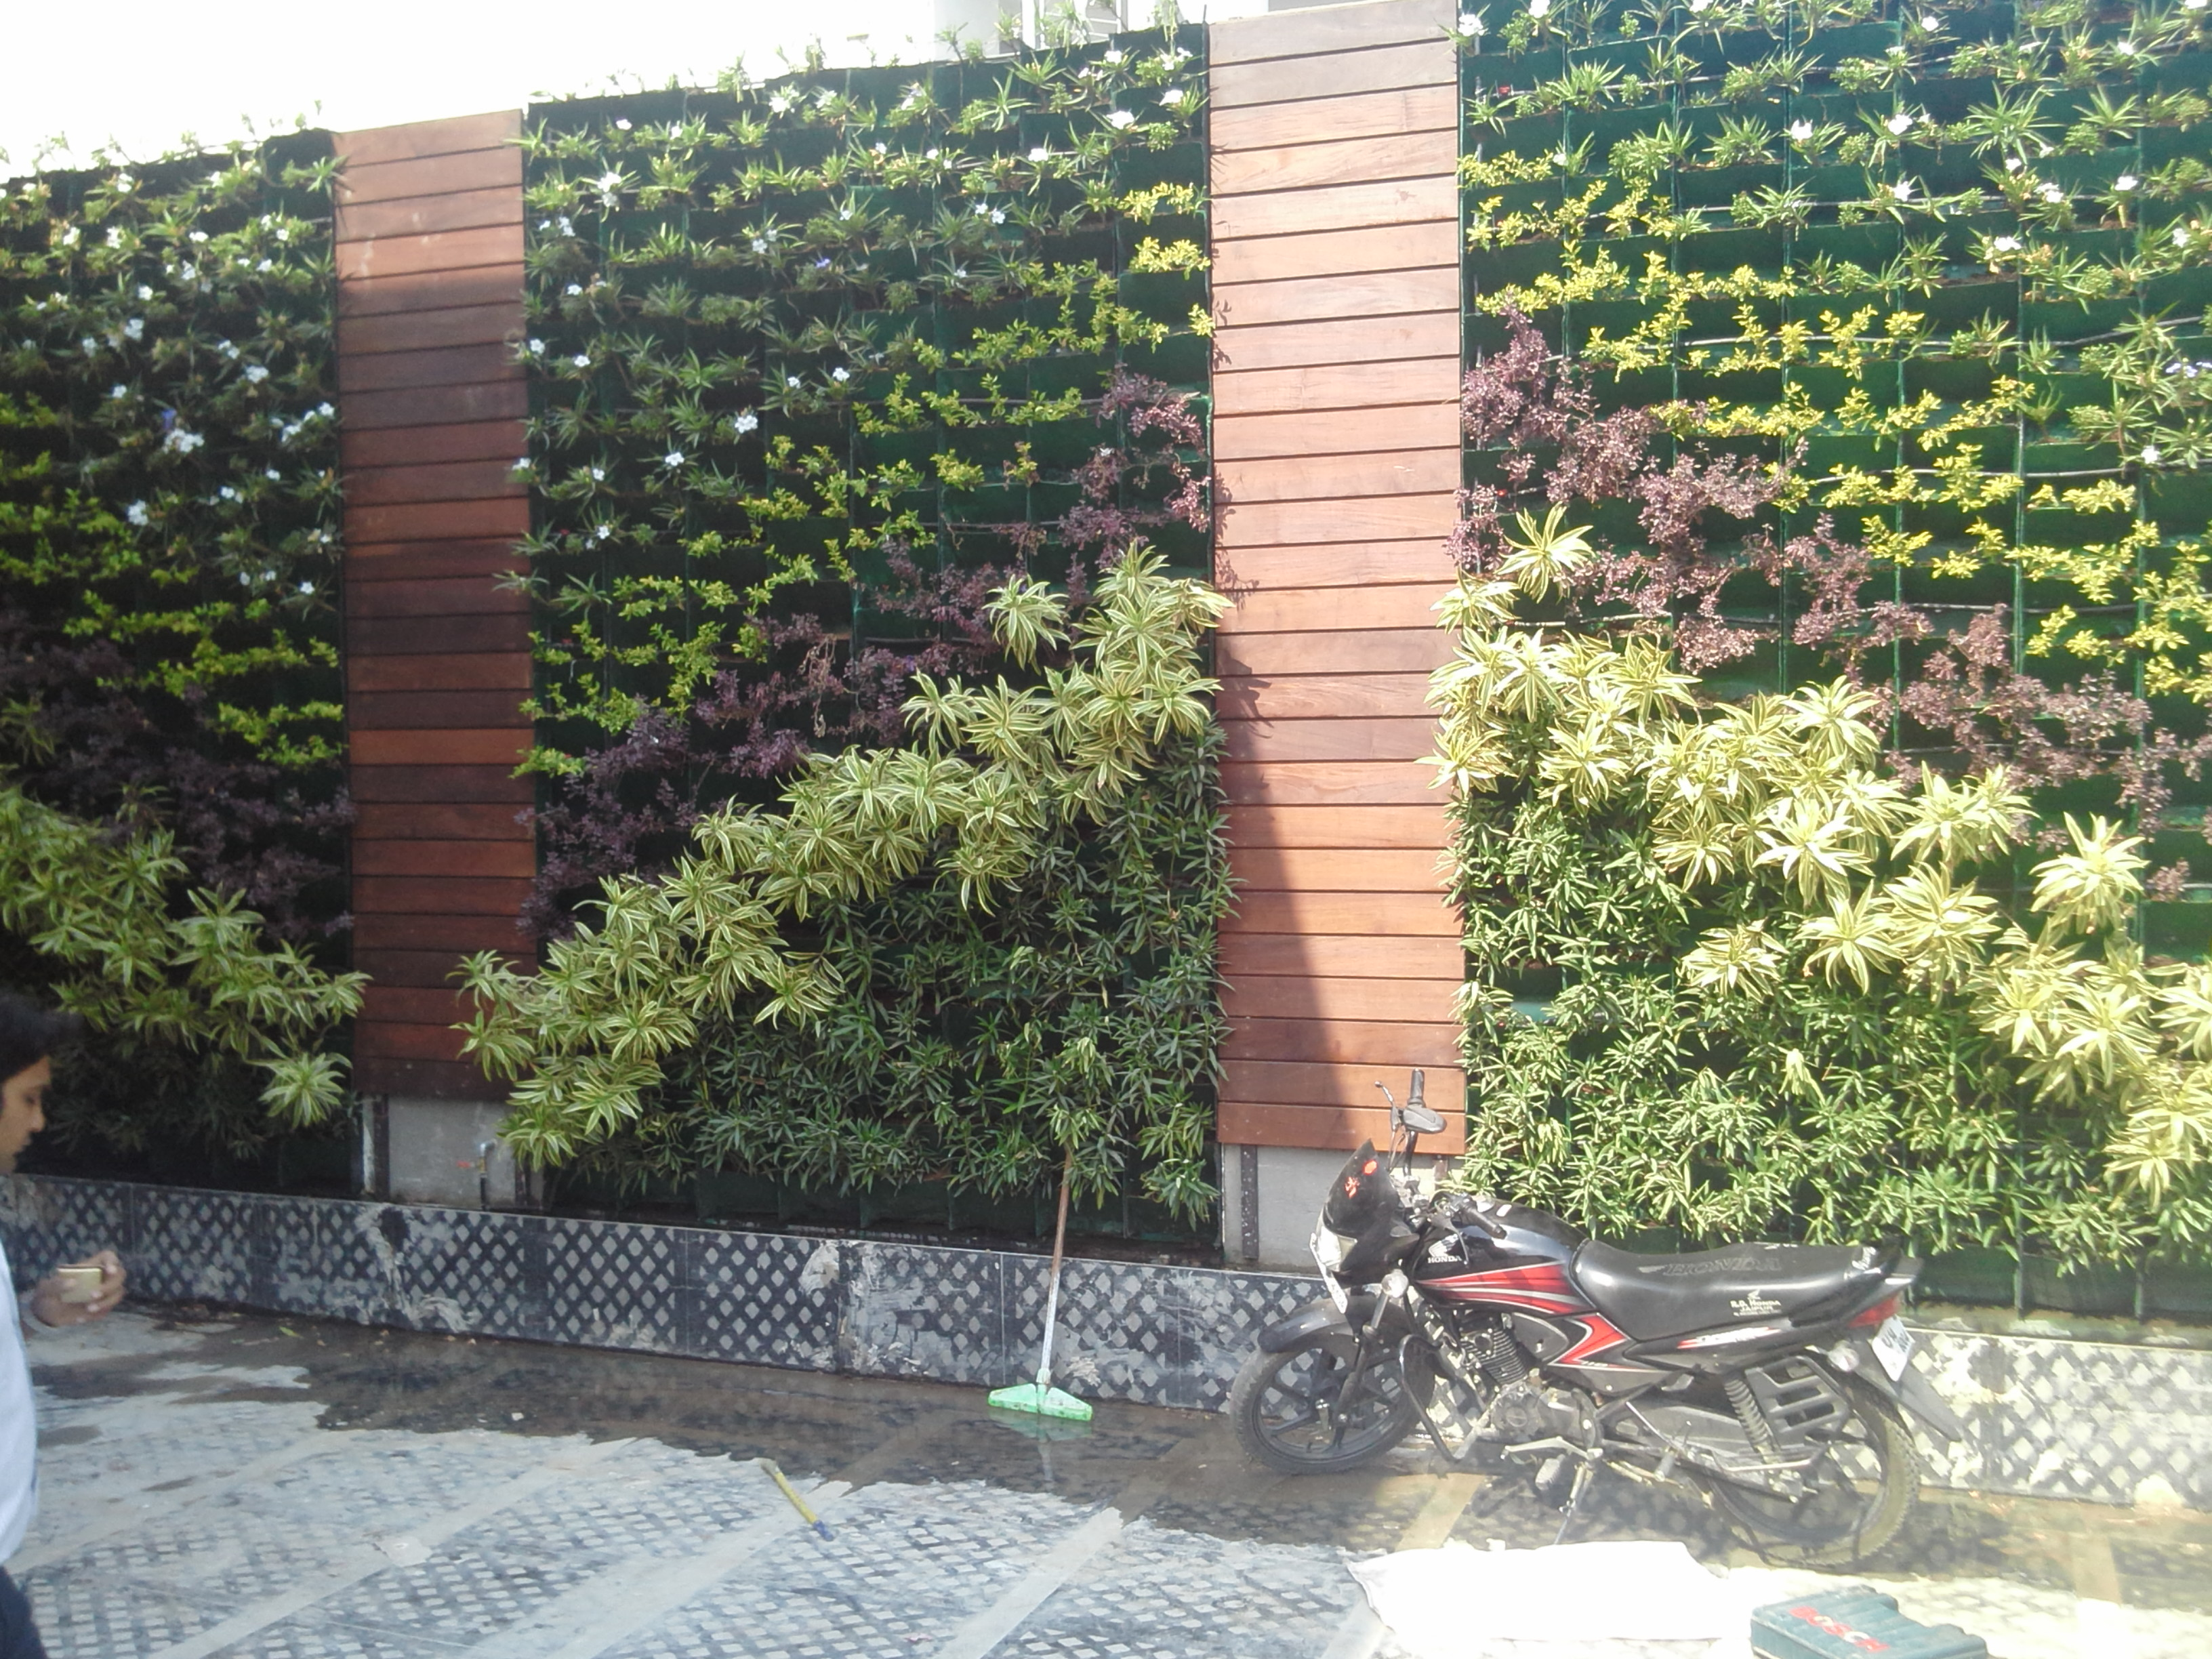 VERTICAL WALL GARDENING